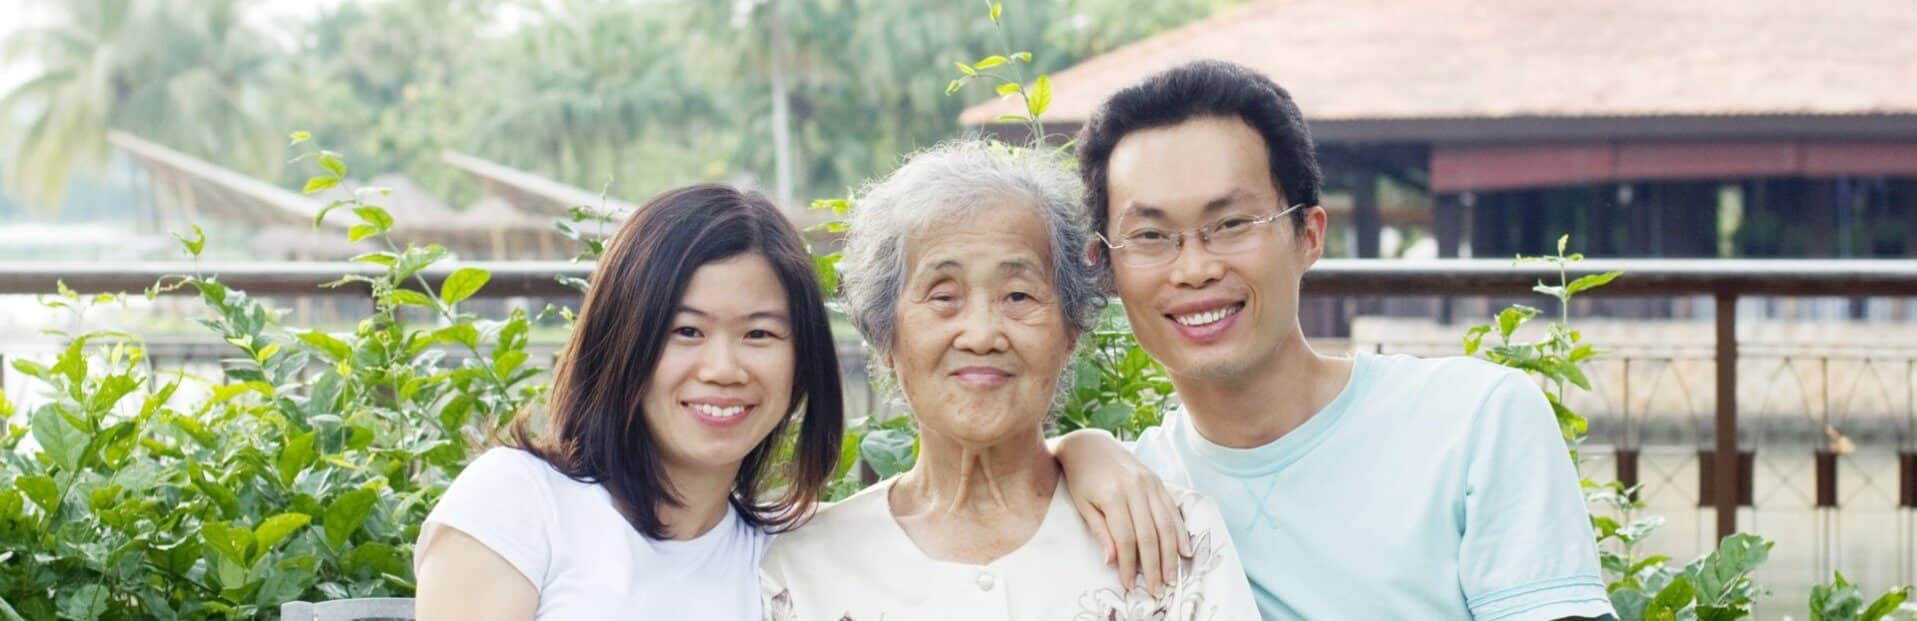 caregiver with chinese